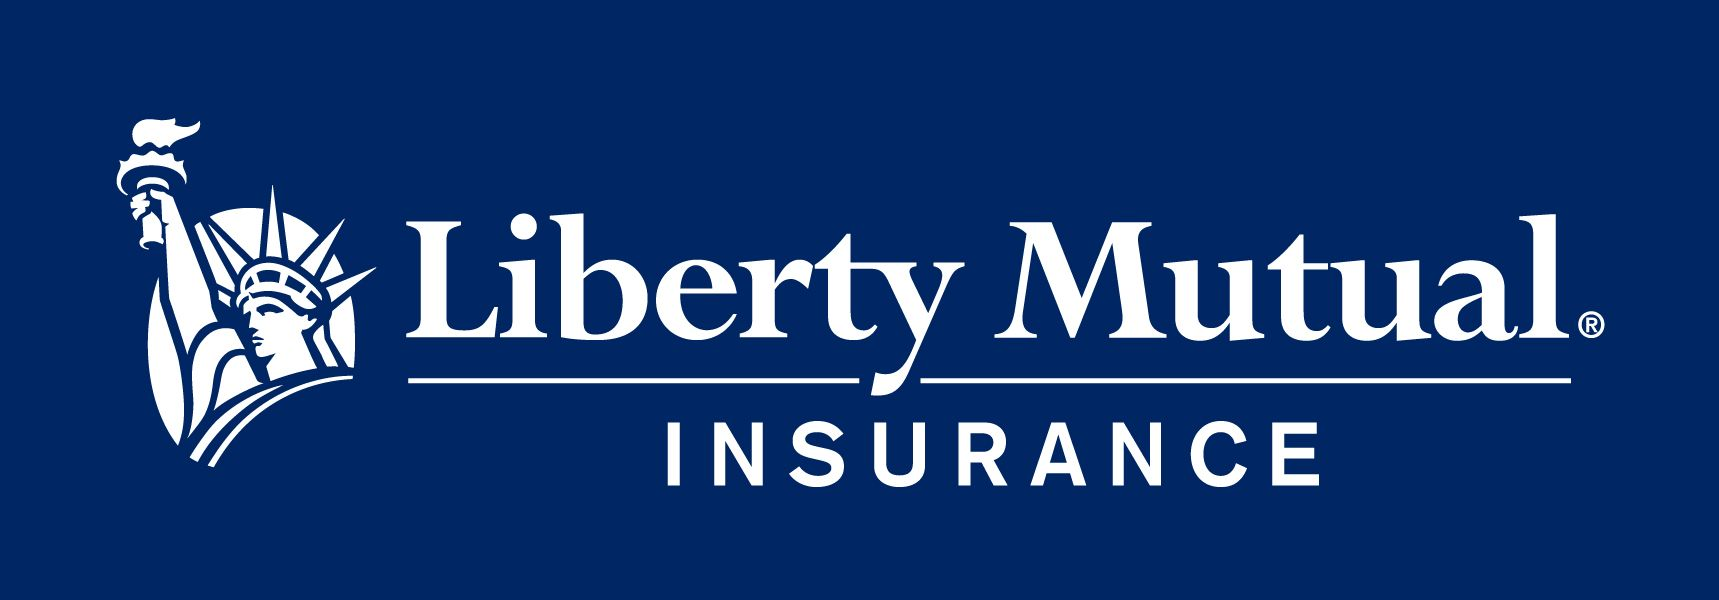 Liberty Mutual Car Insurance Quote Beauteous Image Result For Liberty Mutual Insurance  Branding  Pinterest